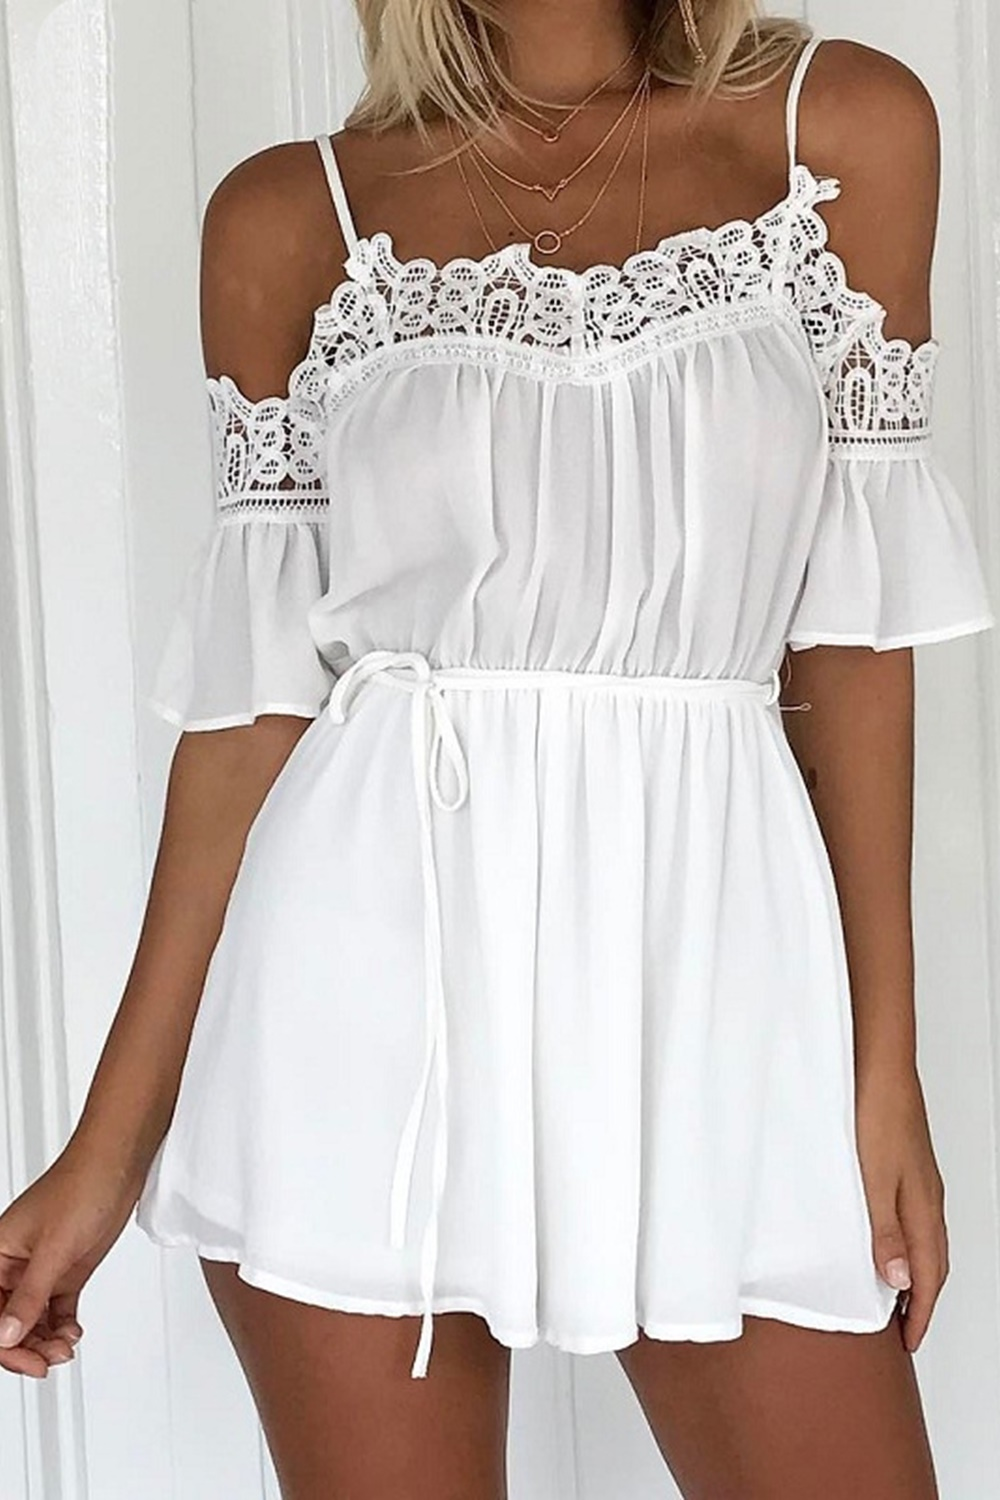 Patty Playsuit - White